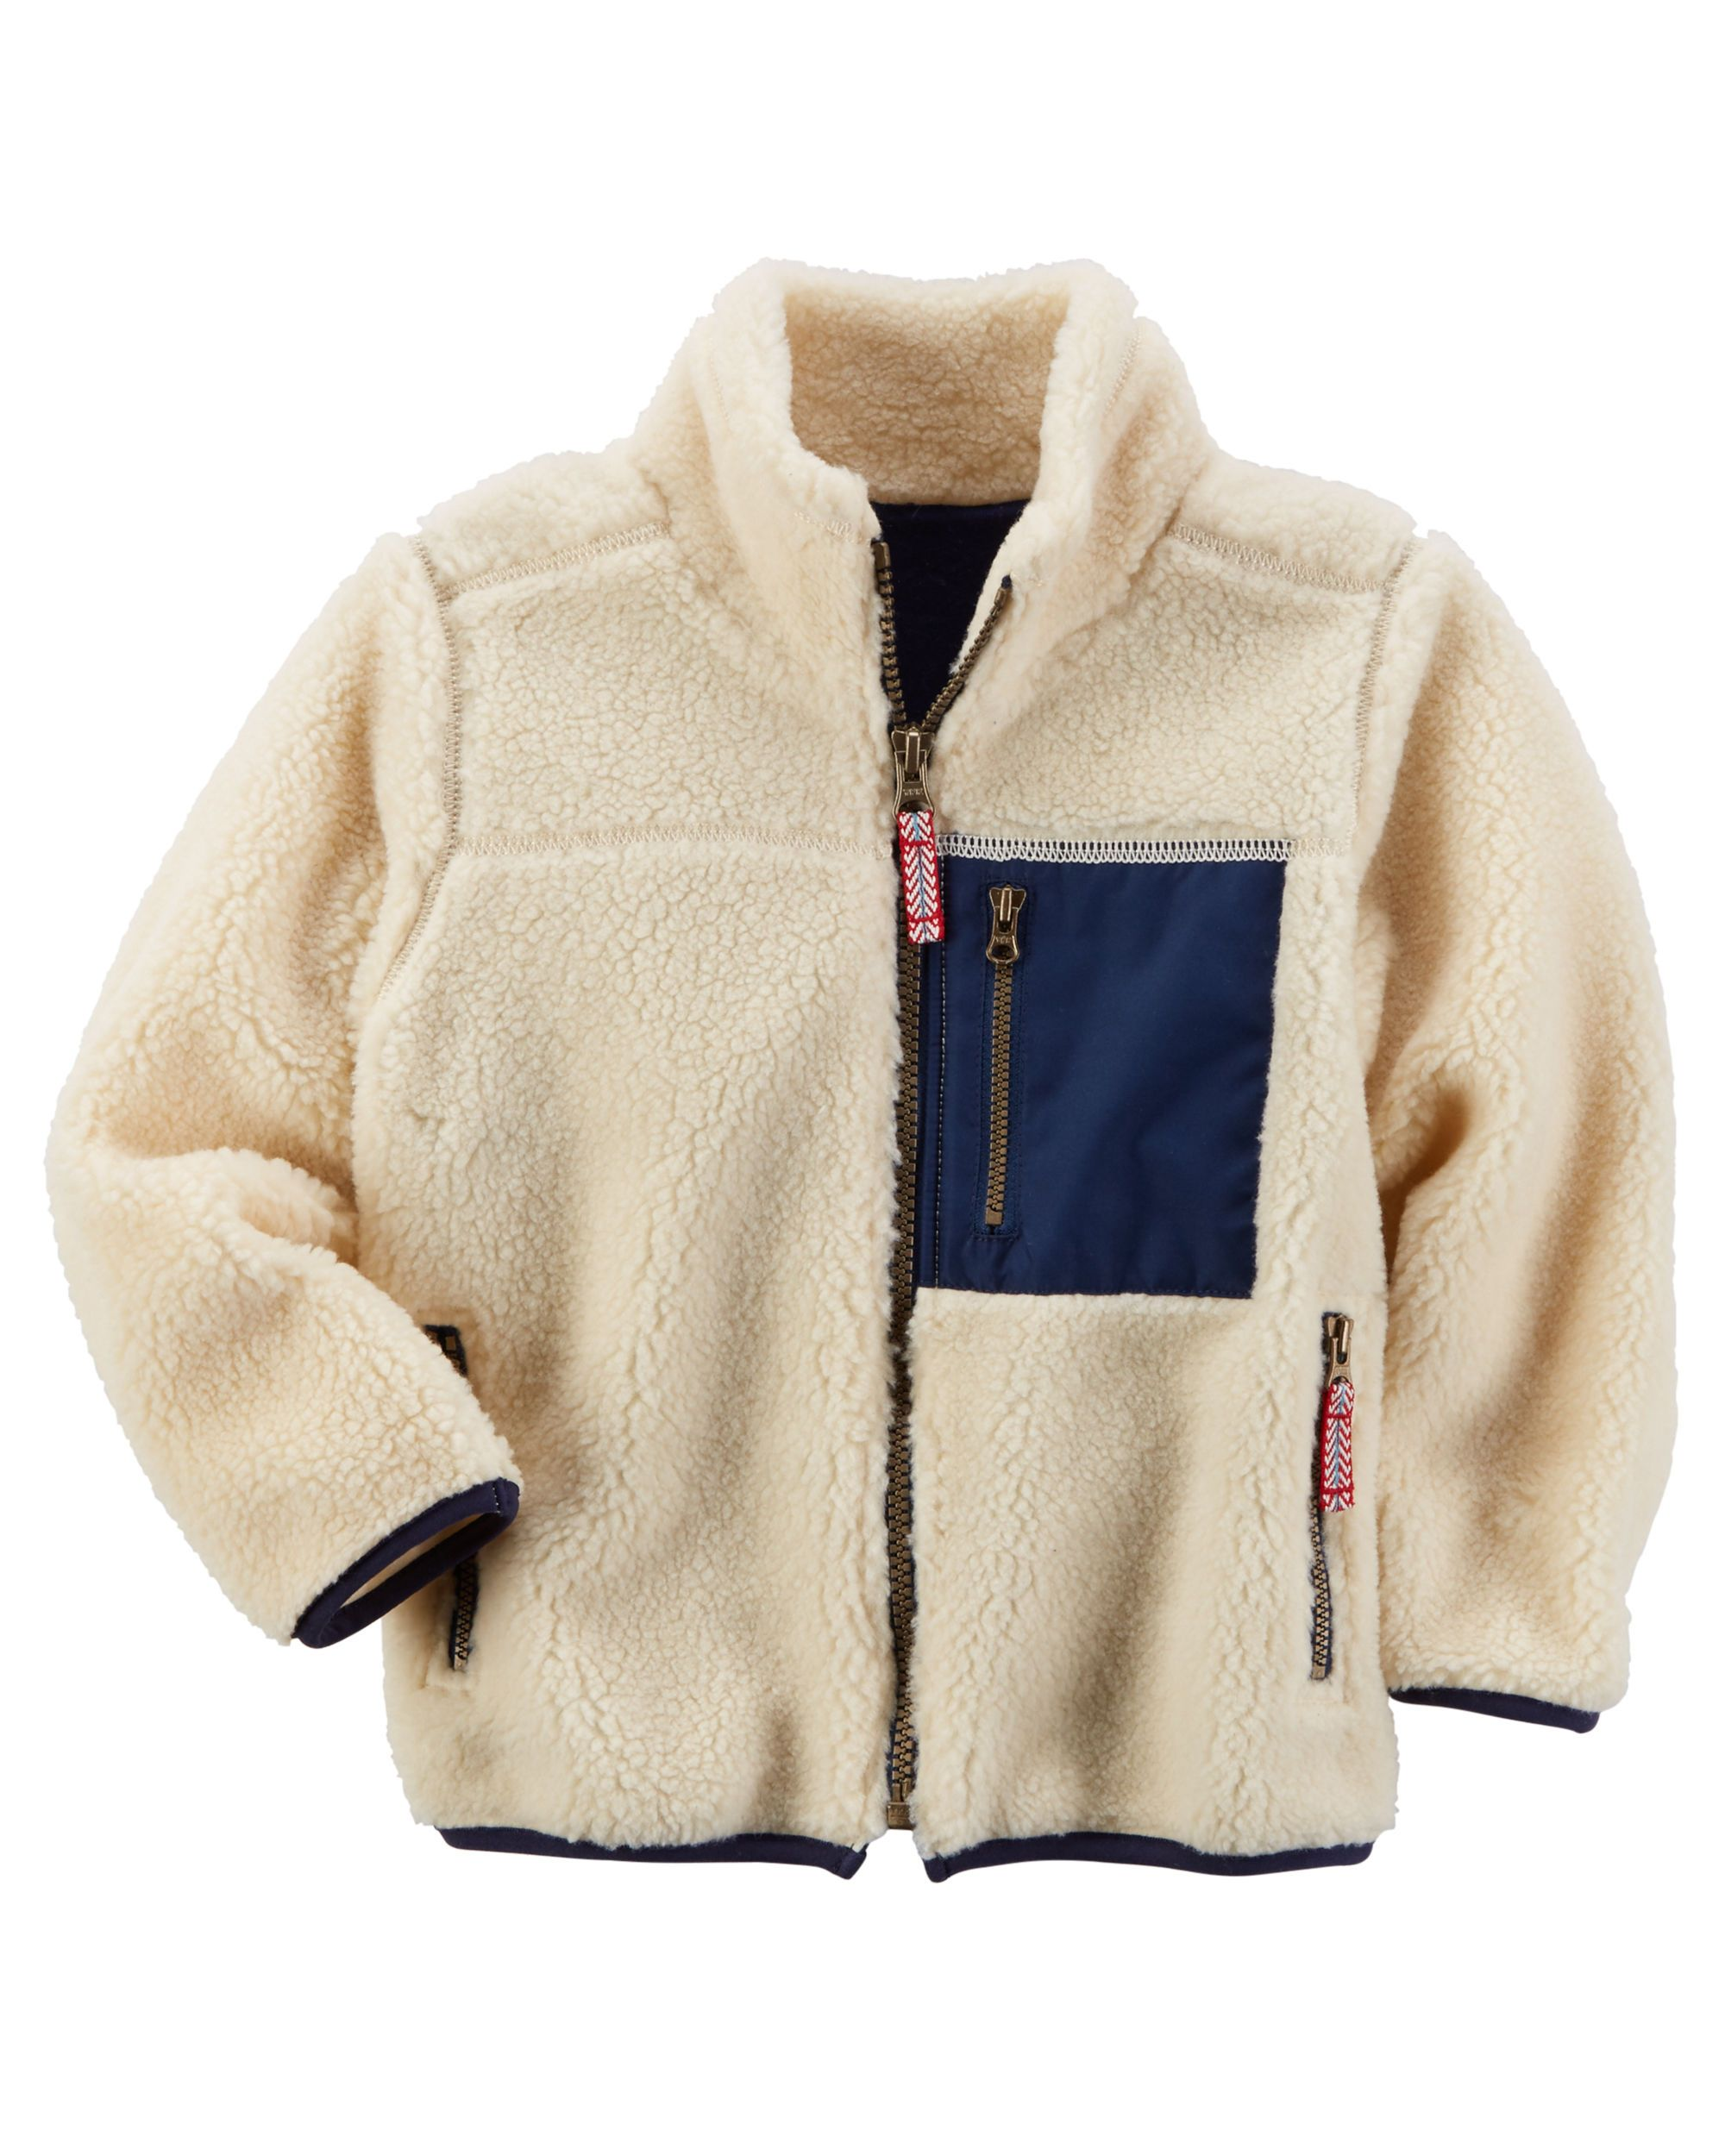 5e21350a6 Toddler Boy Sherpa Zip-Up Jacket